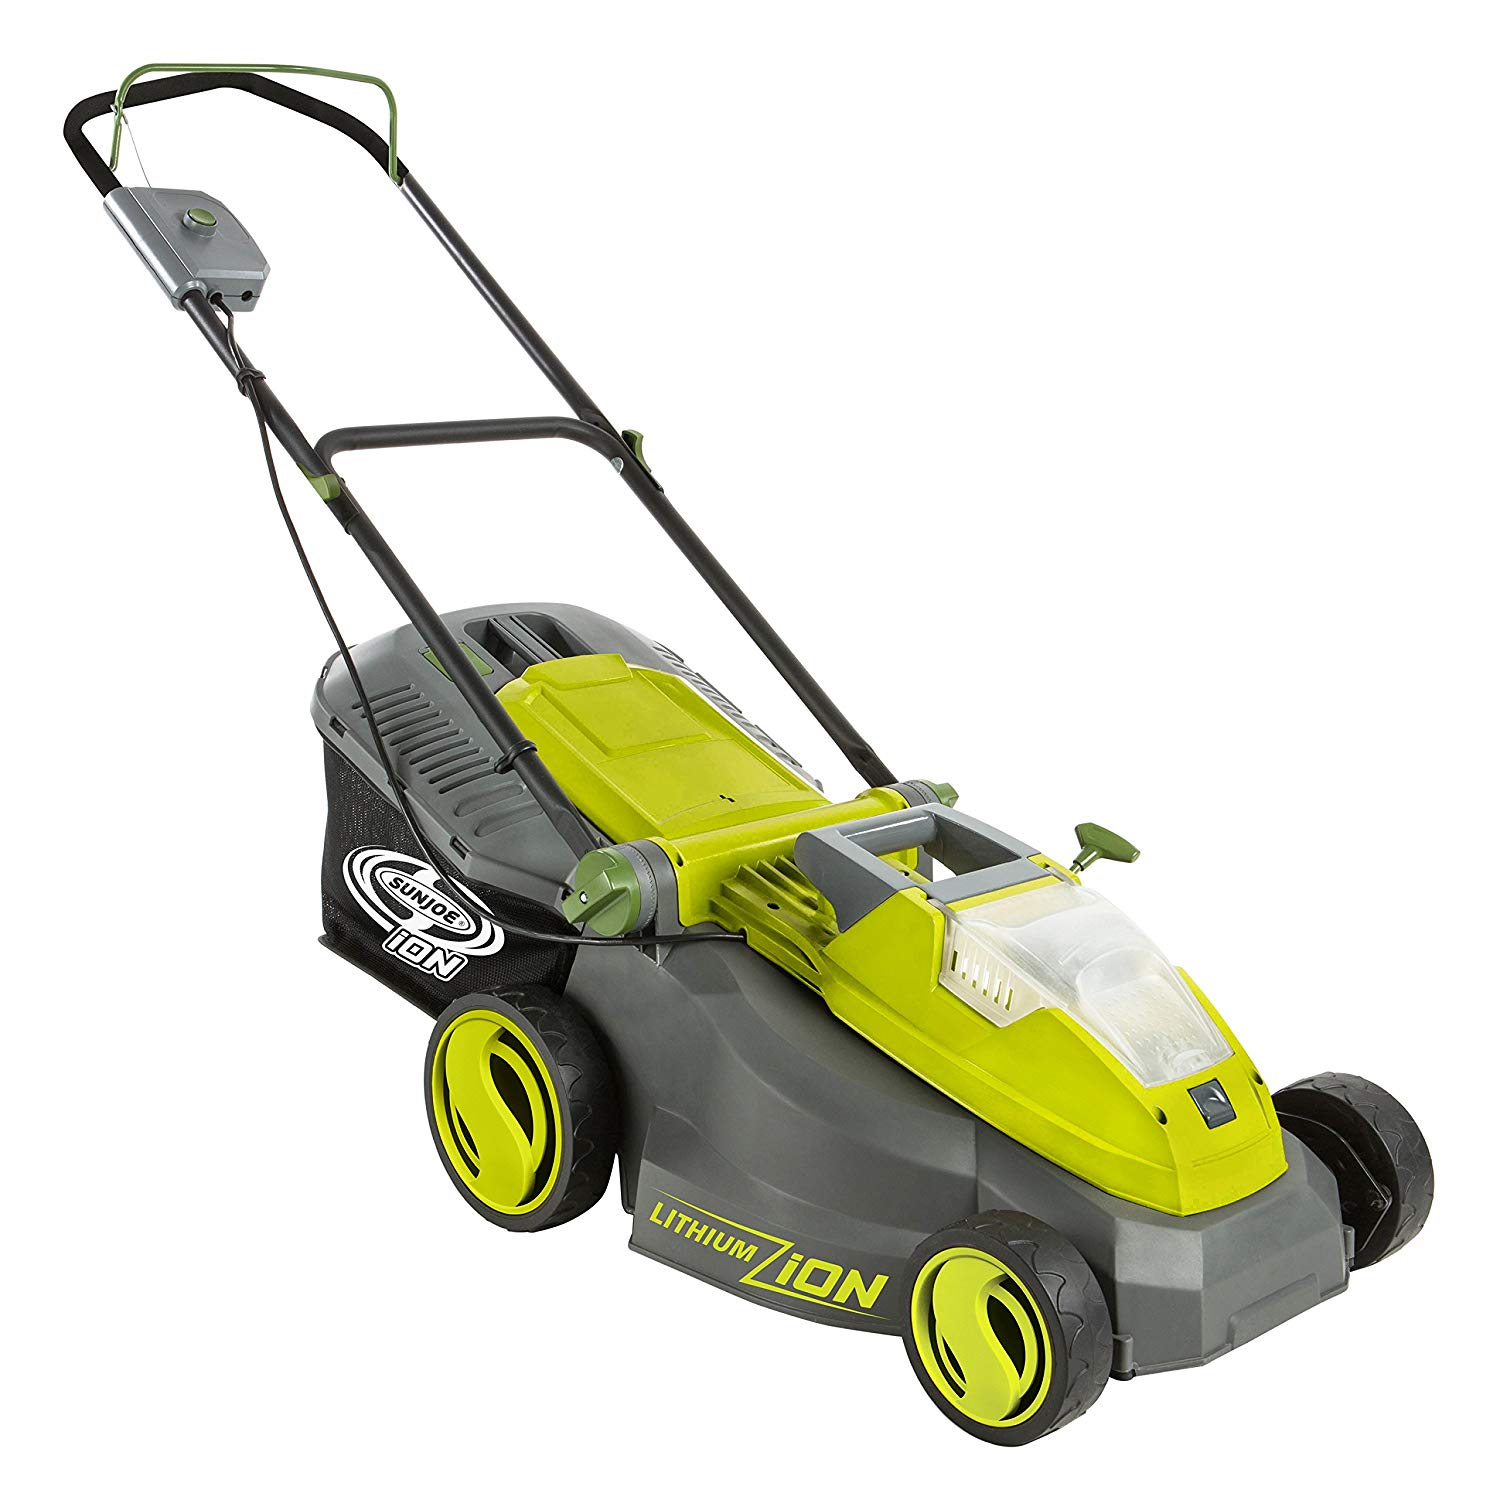 (iON16LM) 16-Inch Brushless Cordless Lawn Mower from Sun Joe